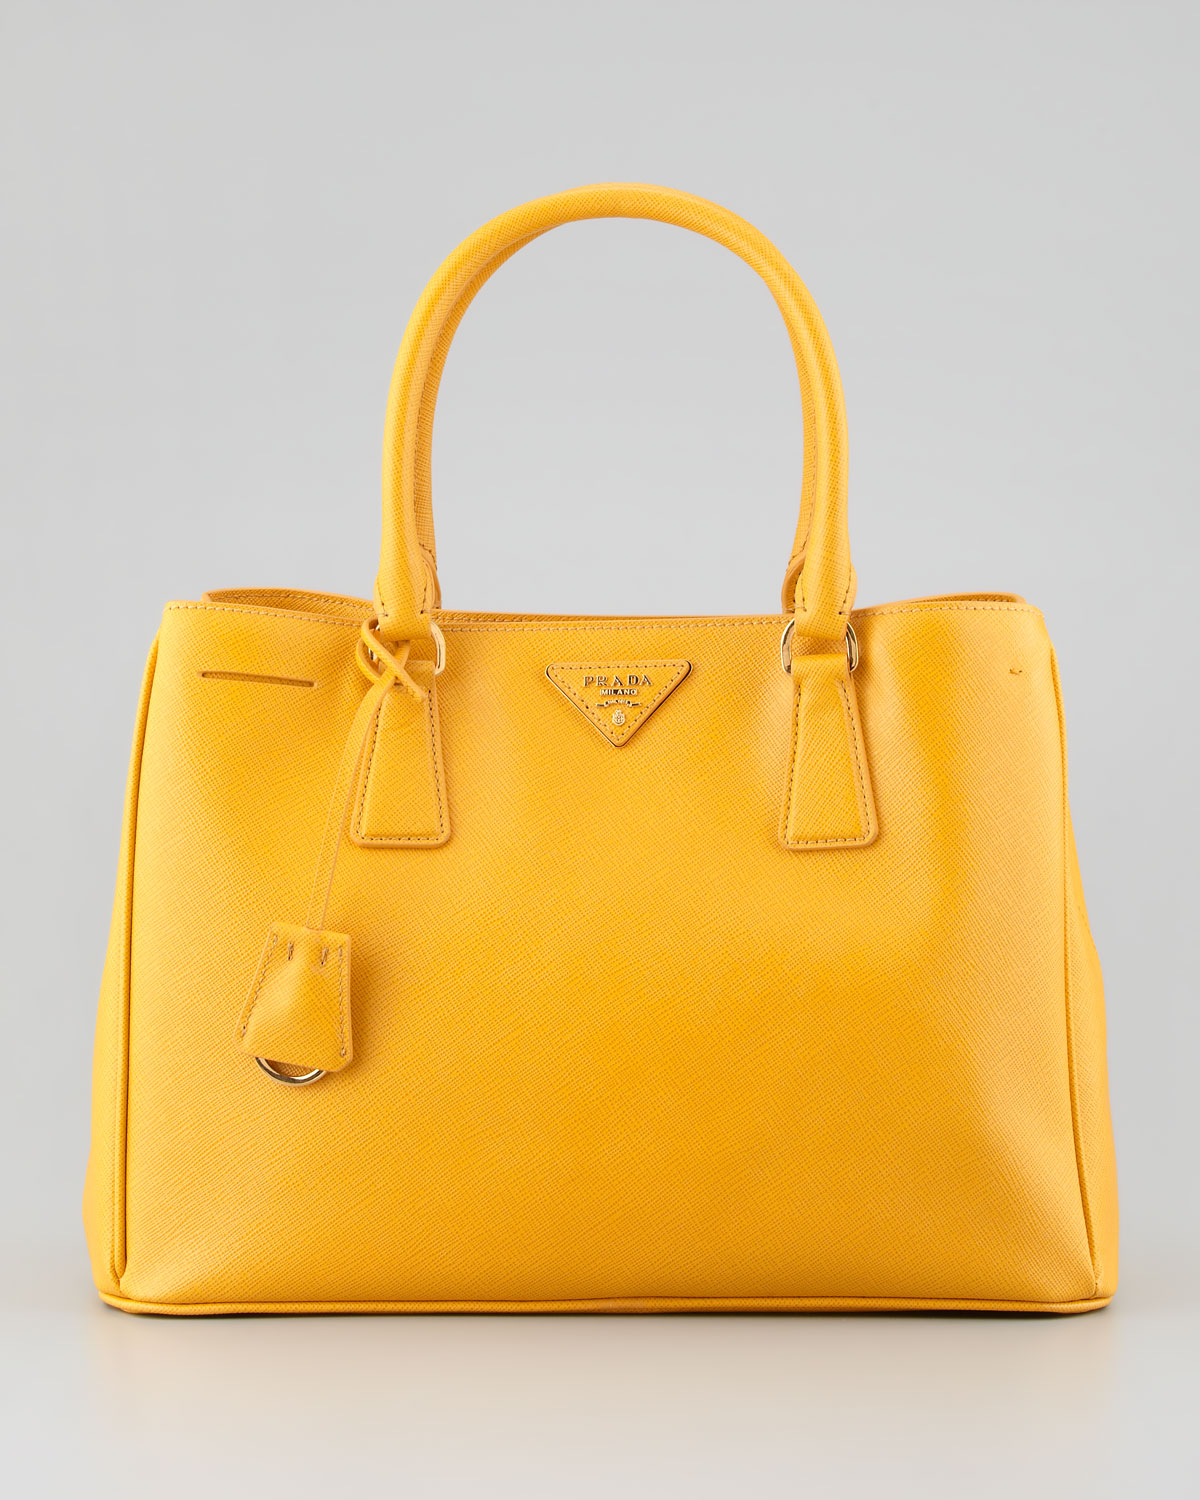 c2daaa98375384 ... where can i buy lyst prada saffiano lady tote bag bright yellow in  yellow d6146 01235